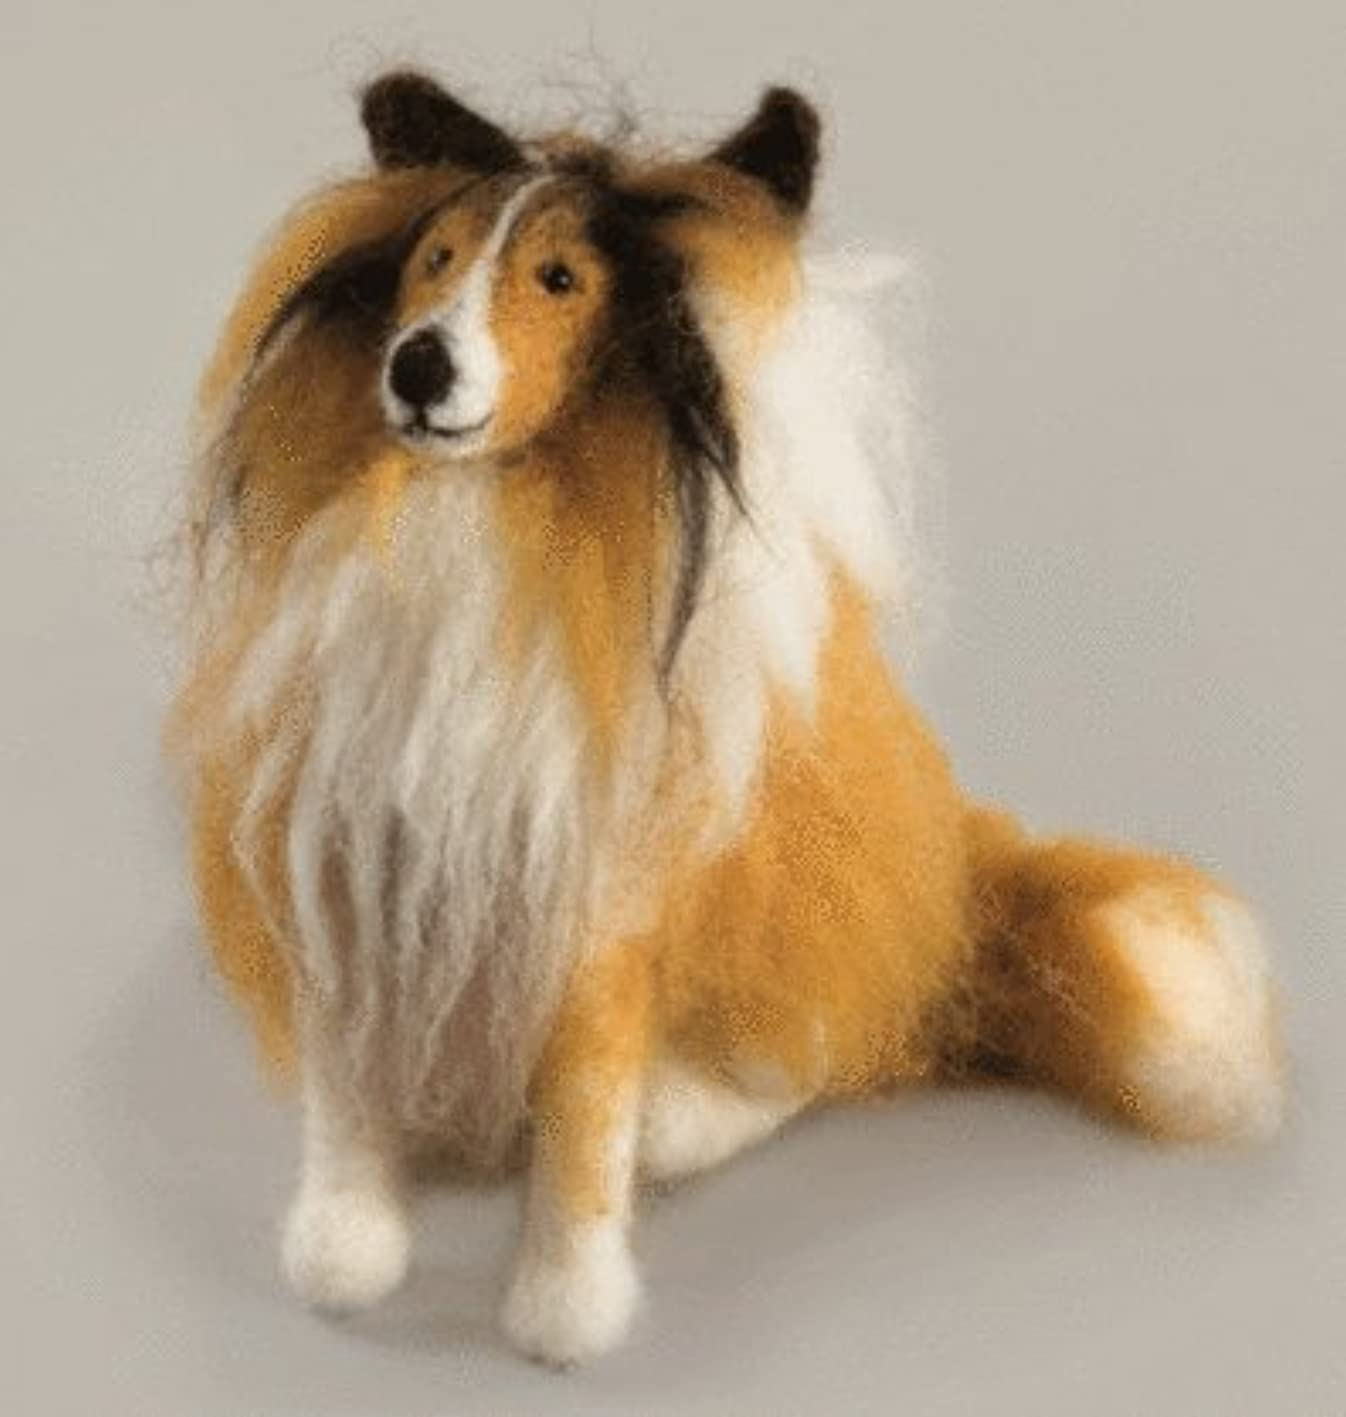 Felting kit Charivna mit #B-150 Animals Dog Colly 14x11 cm / 5.51x4.33 in pmqveniuszs271